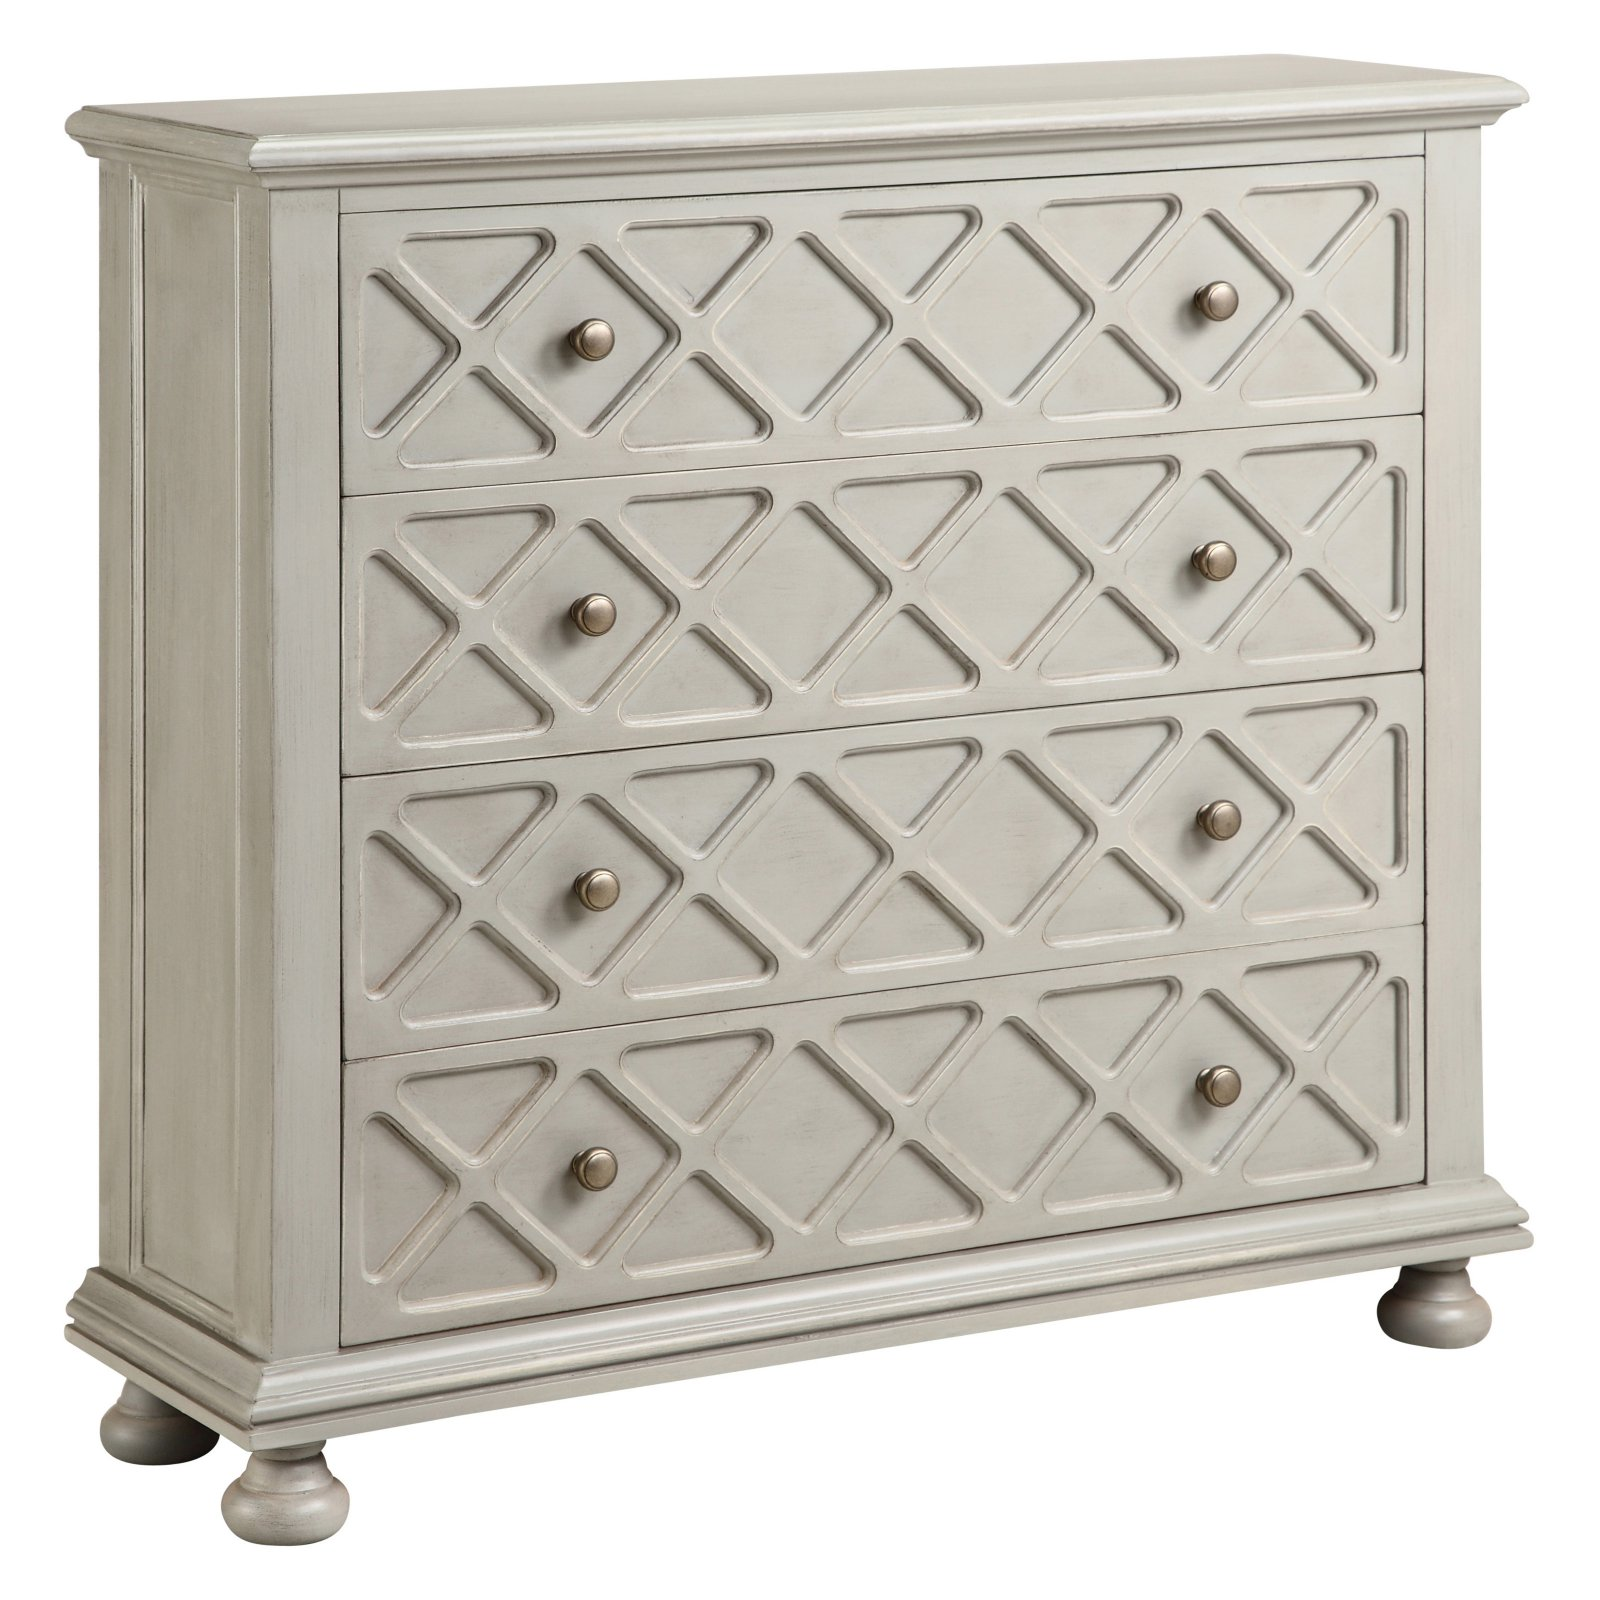 Stein World Paige 4 Drawer Accent Chest